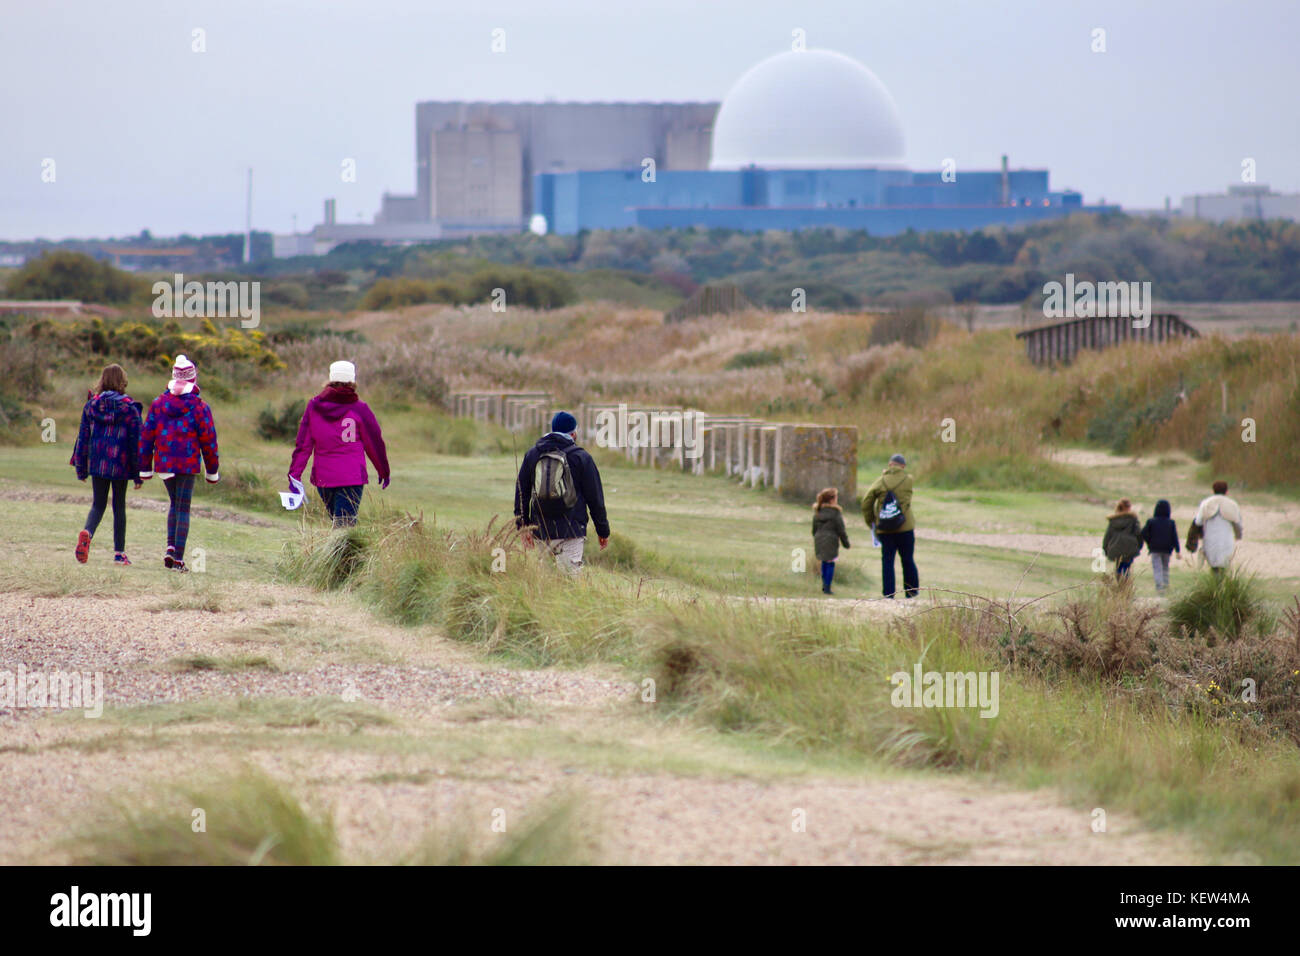 Saxmundham, UK. 23rd Oct, 2017. UK Weather: People walking near Minsmere nature reserve on an overcast day in Suffolk. - Stock Image